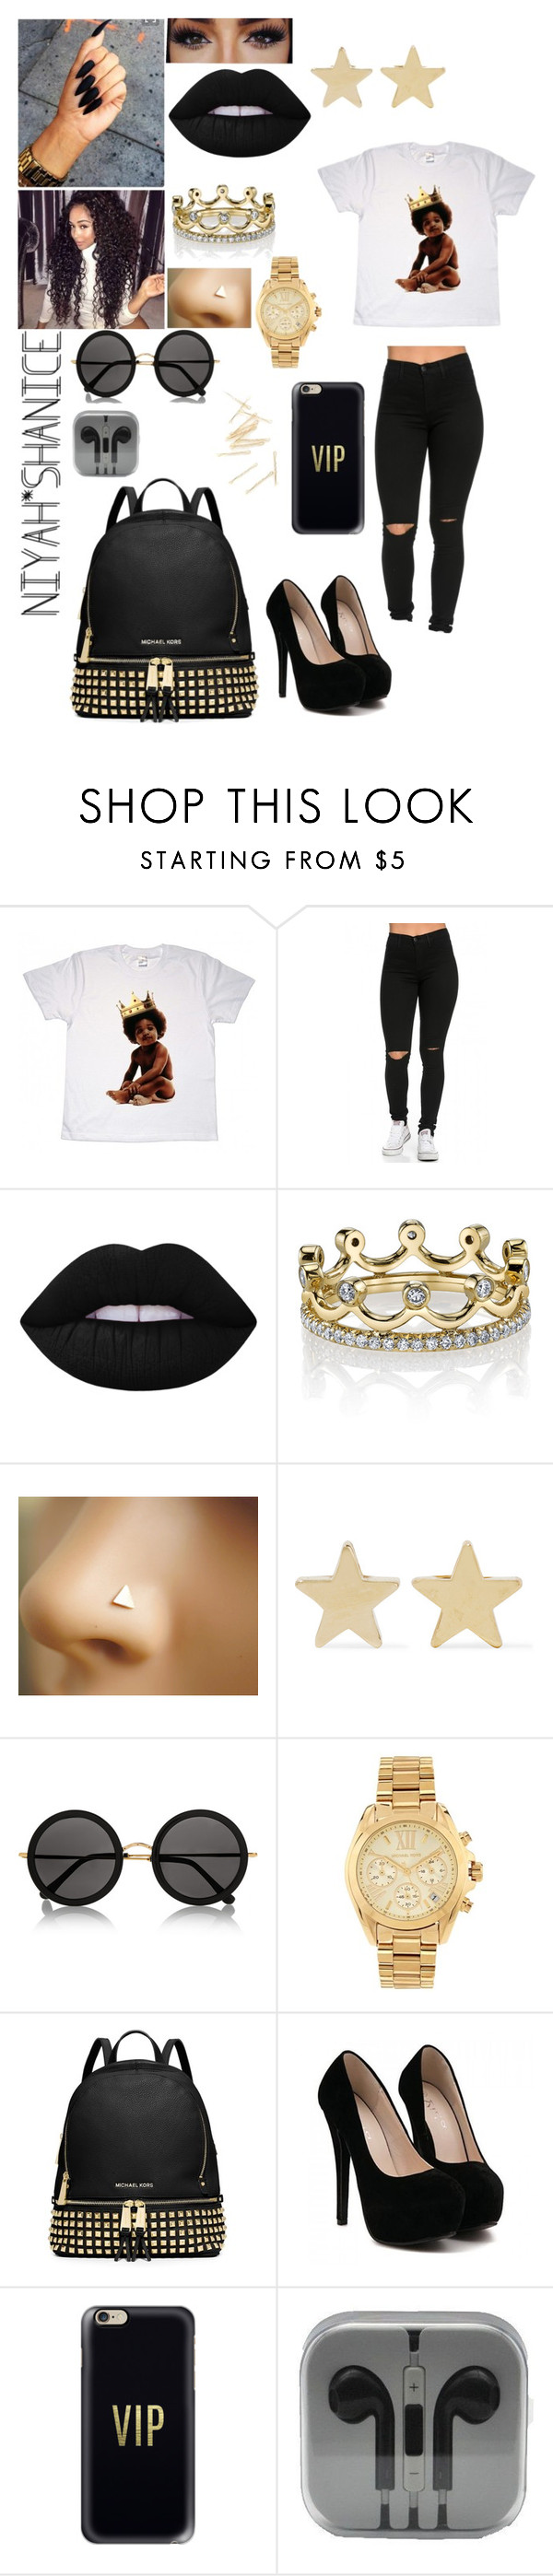 """""""The Gold Life Was All A Dream"""" by adavies1115 ❤ liked on Polyvore featuring Big Baby, Lime Crime, Erica Courtney, Jennifer Meyer Jewelry, The Row, Michael Kors, MICHAEL Michael Kors and Casetify"""